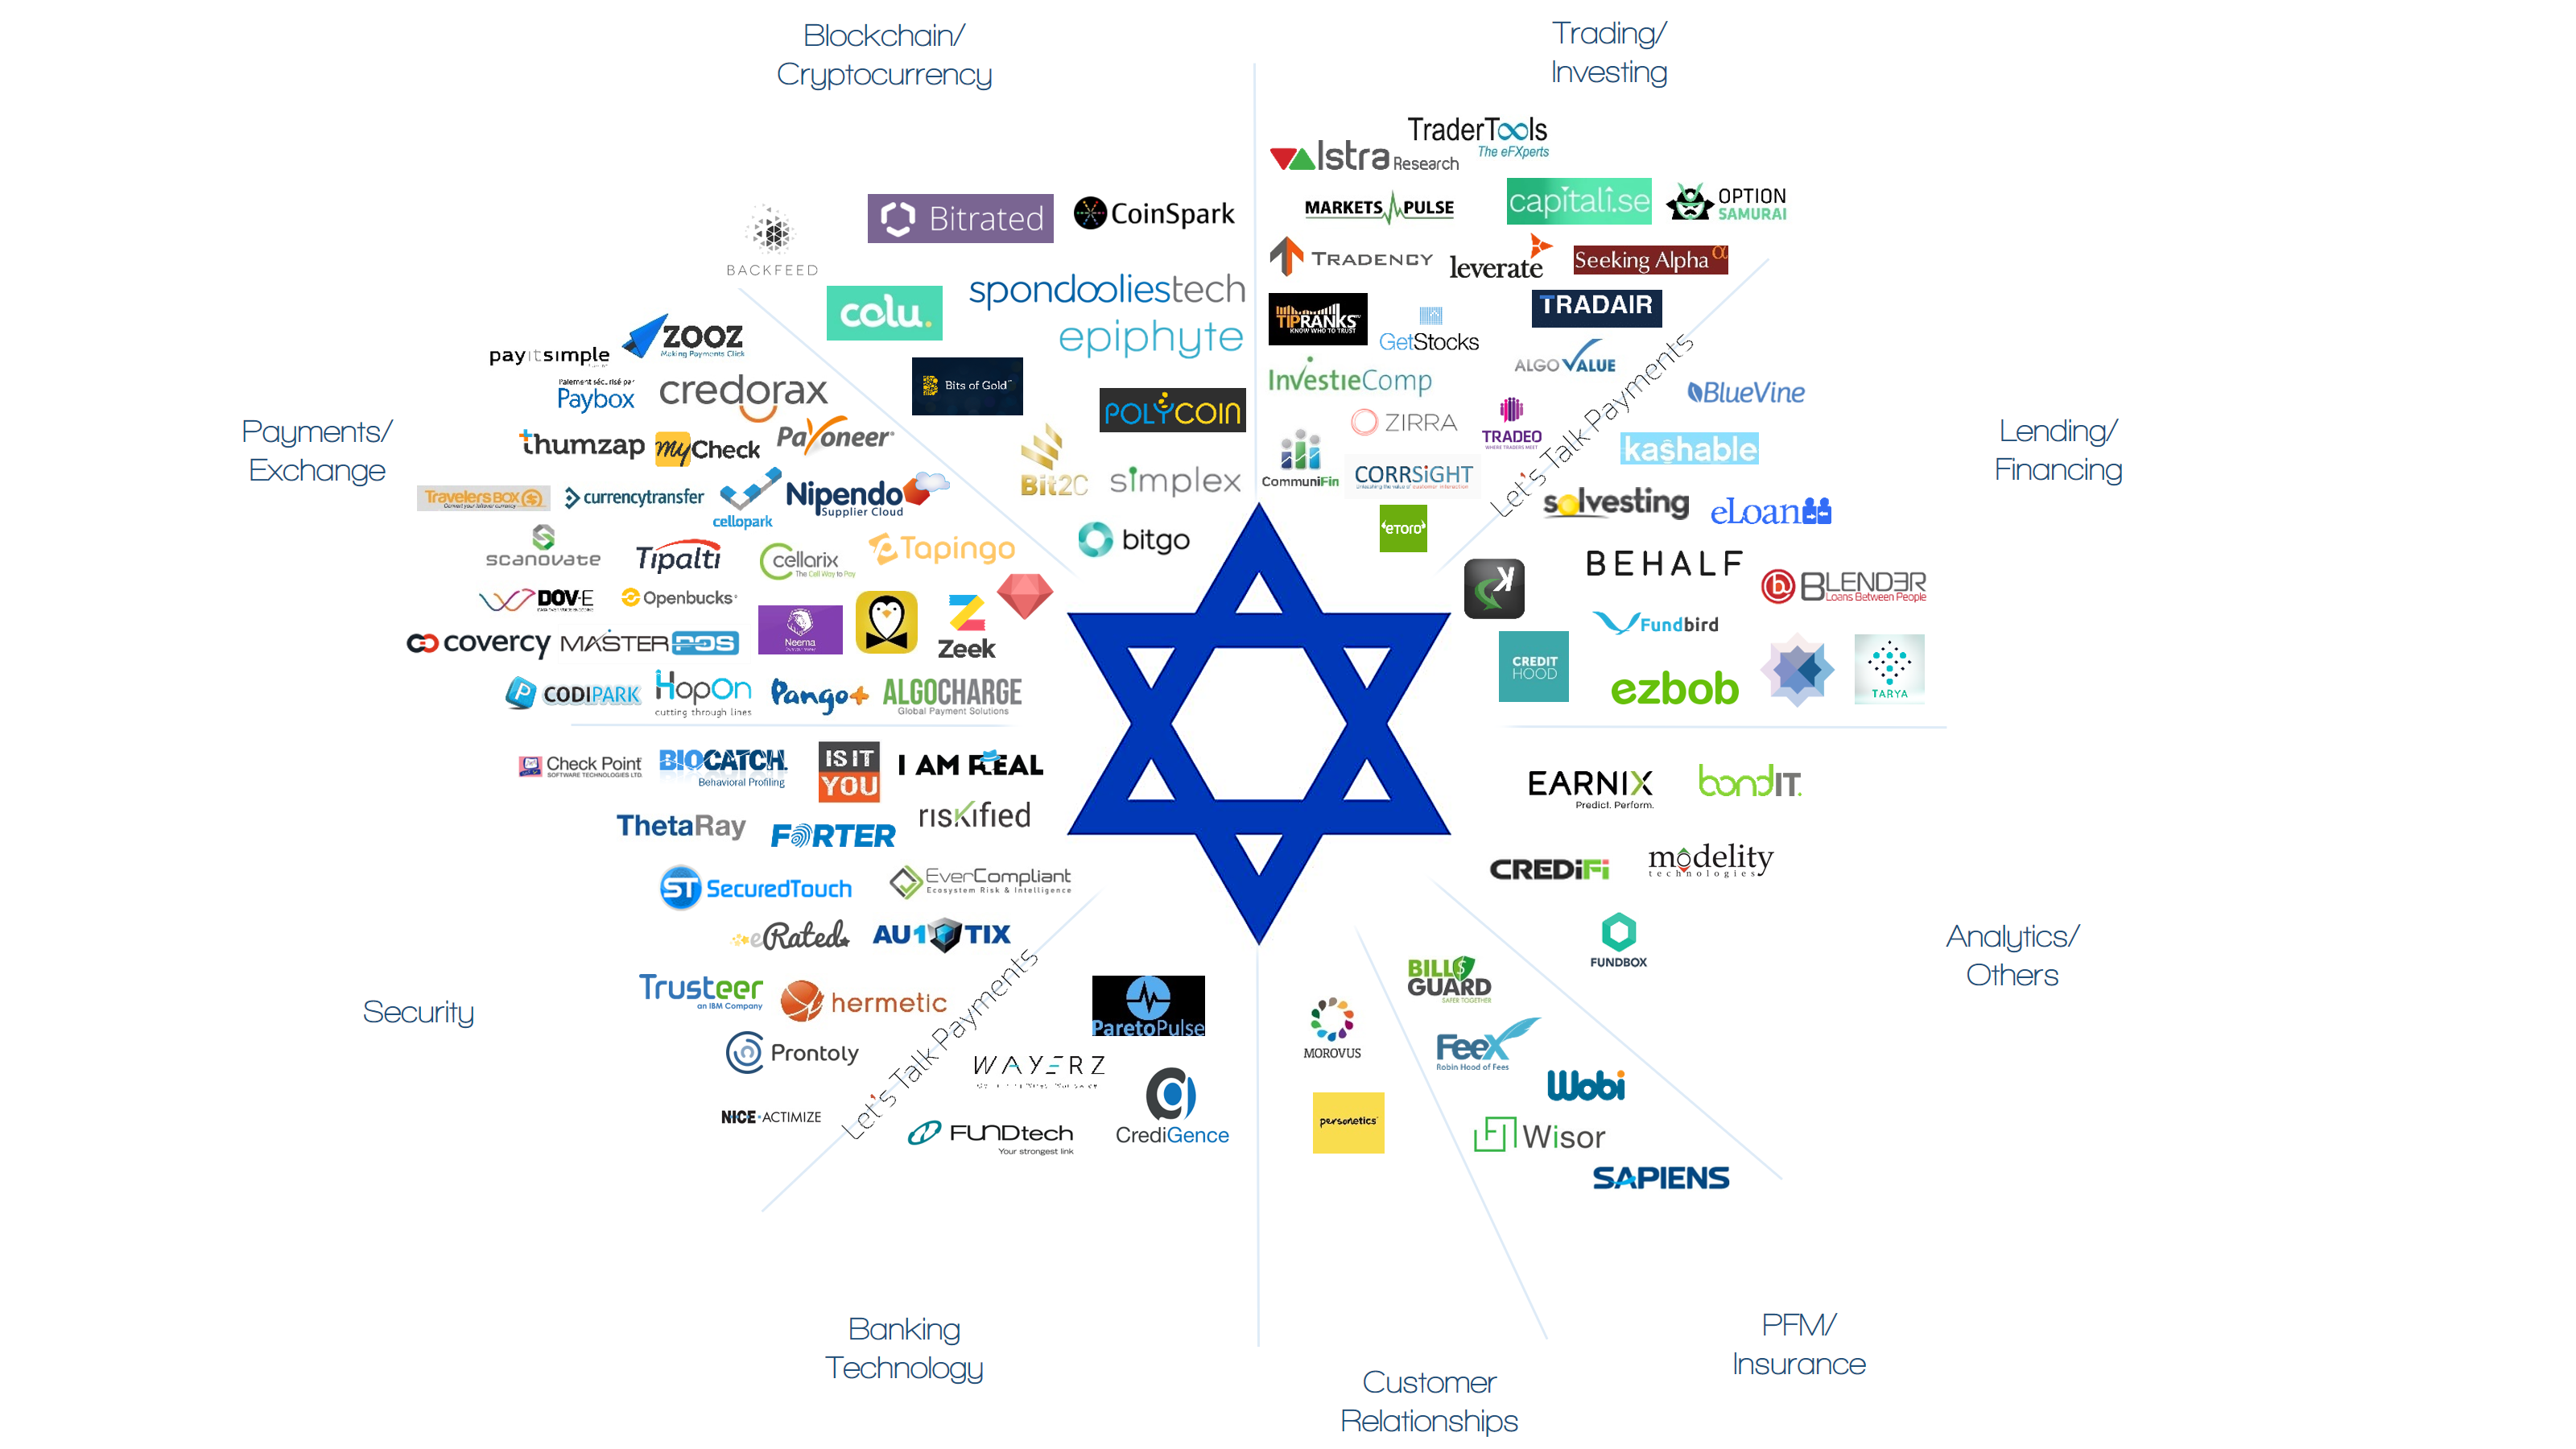 Israeli Startups Raise $1.5 Billion in Q1 2019